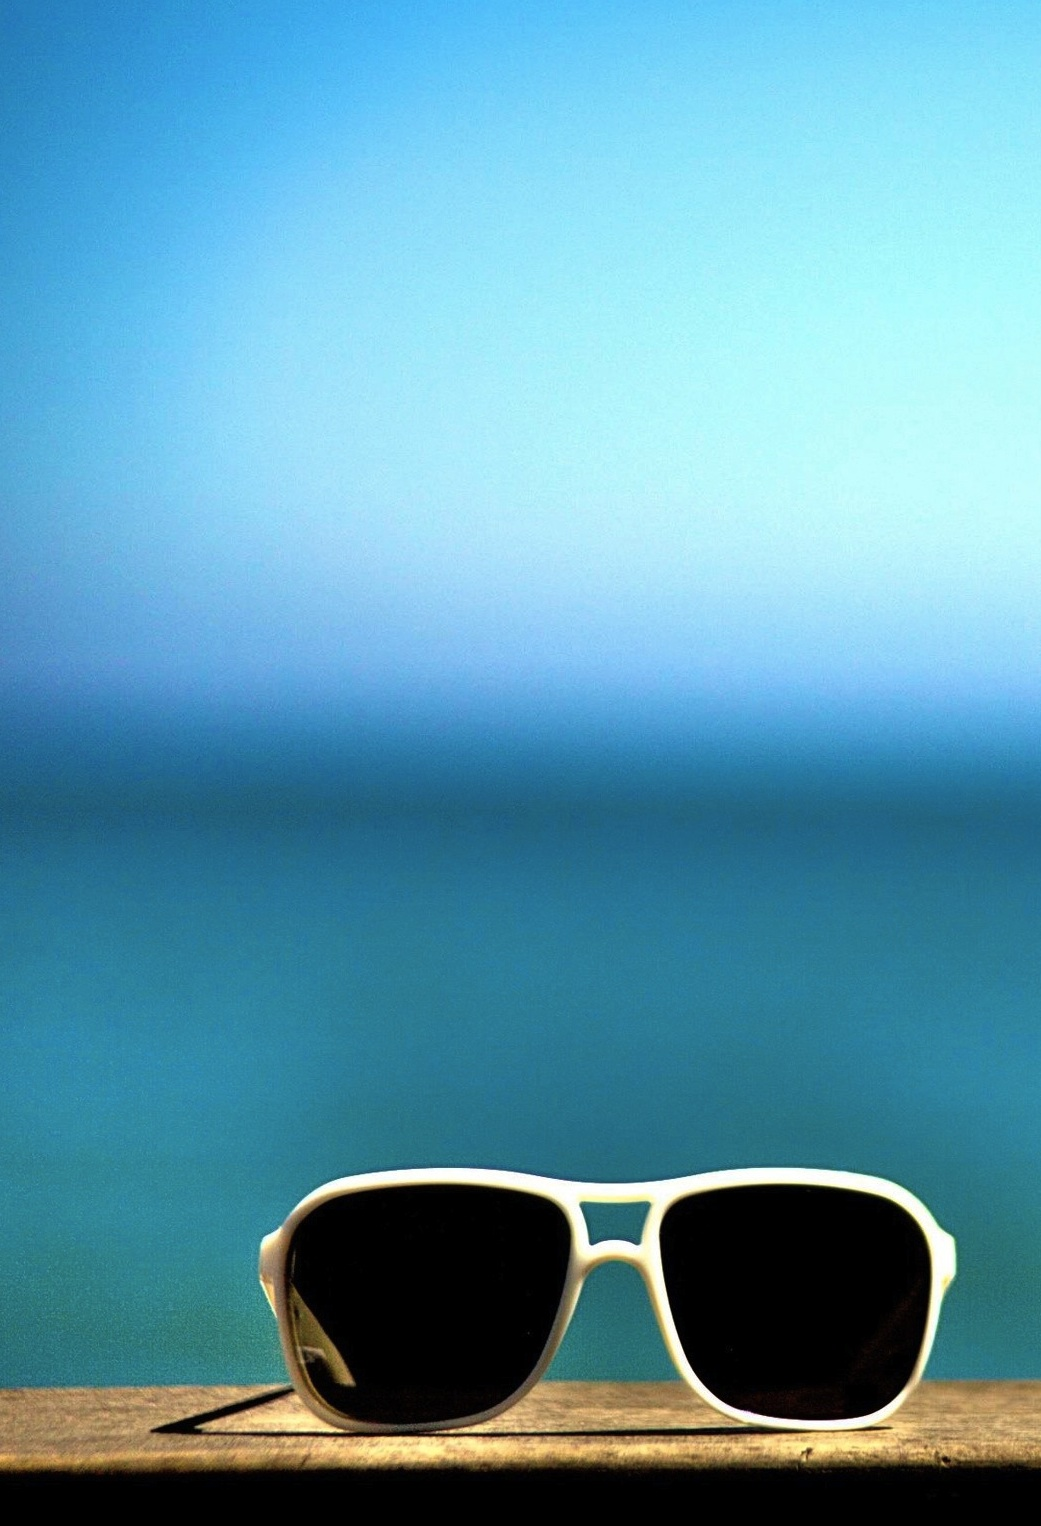 Best Dynamic Retina Space Wallpapers For iPhone 5s   mobilecrazies 1041x1526